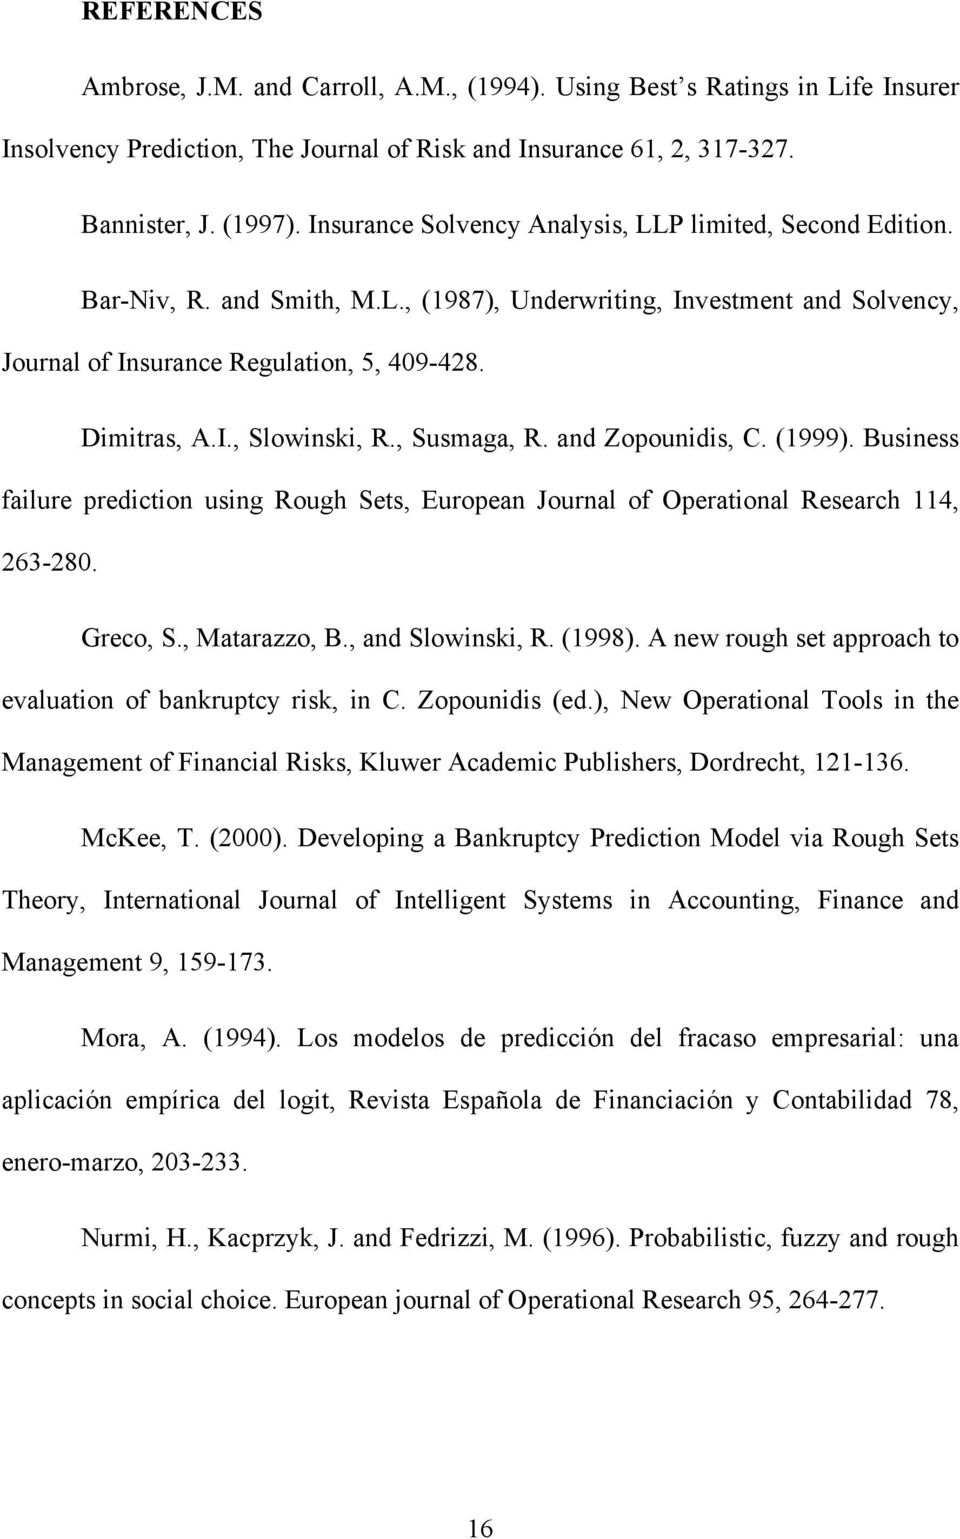 , Susmaga, R. and Zopounidis, C. (1999). Business failure prediction using Rough Sets, European Journal of Operational Research 114, 263-280. Greco, S., Matarazzo, B., and Slowinski, R. (1998).